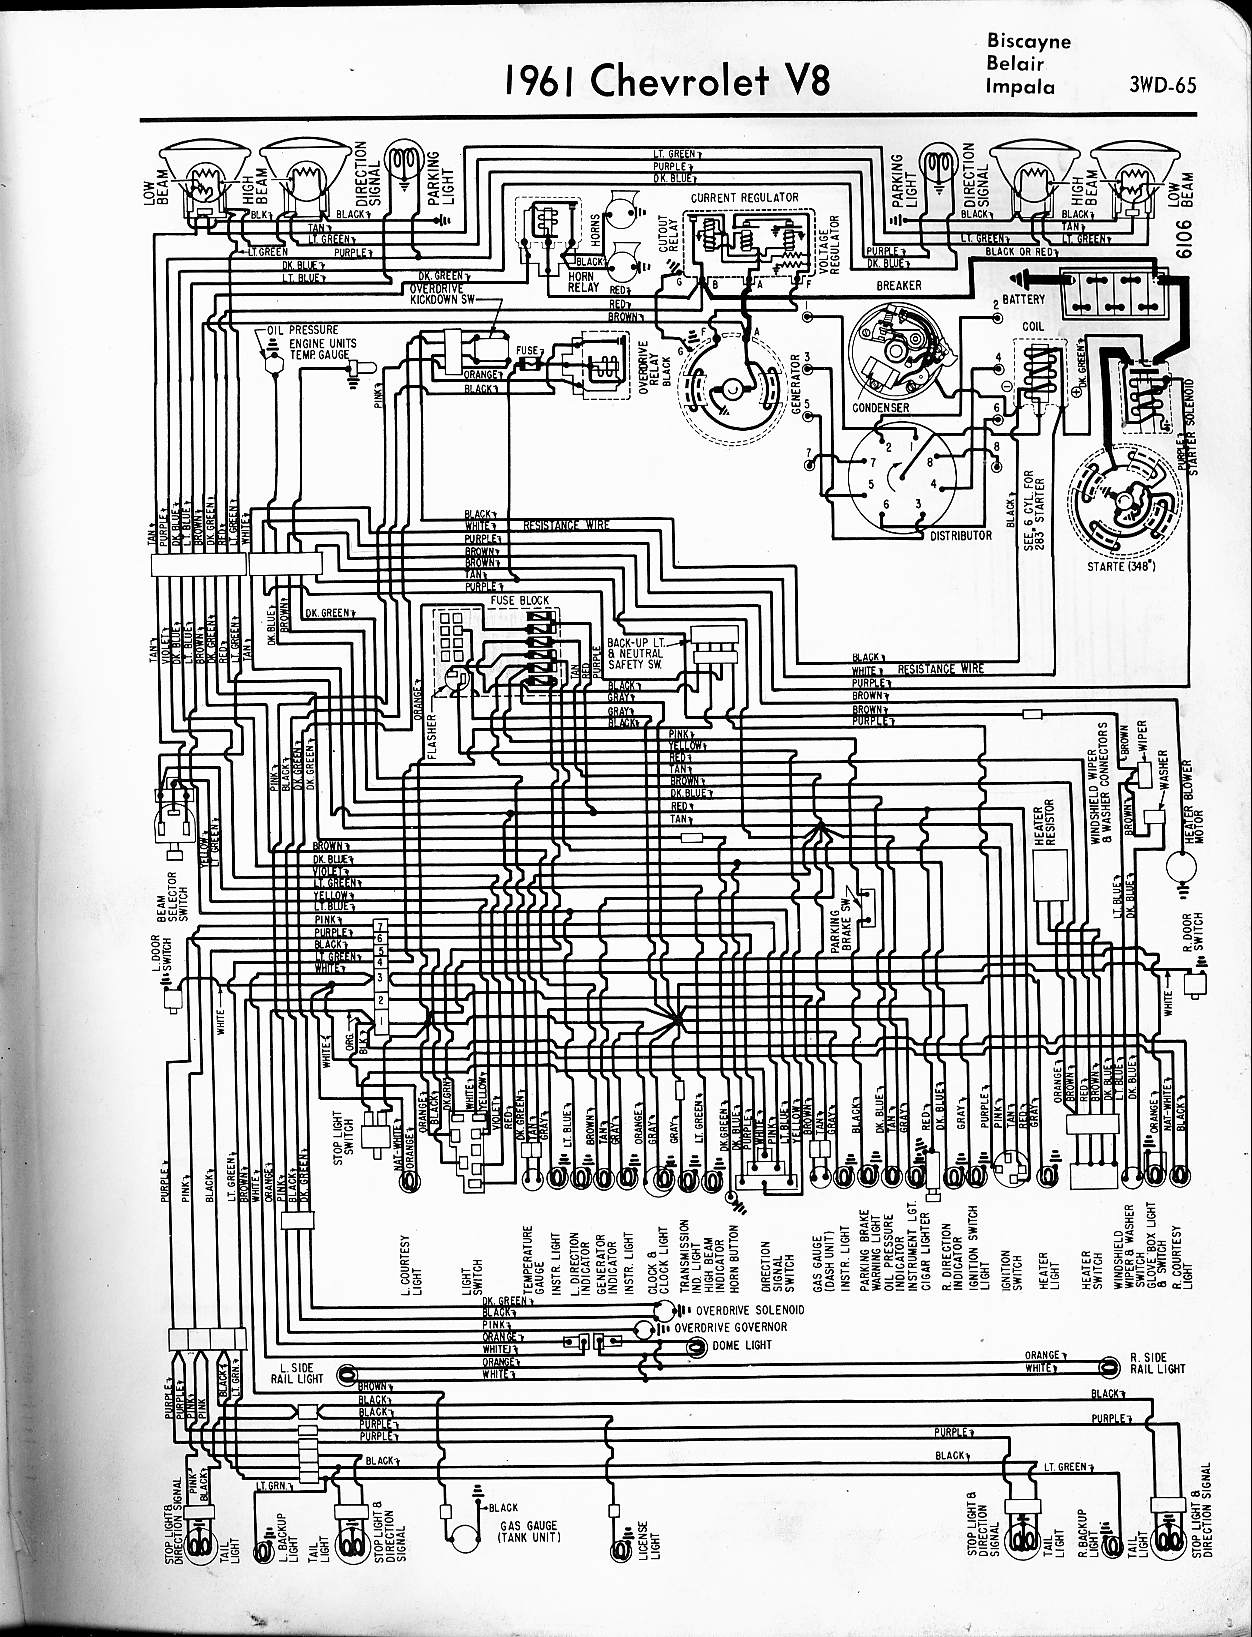 MWireChev61_3WD 065 2002 impala wiring diagram 2002 chevy impala bcm diagram \u2022 free 2002 corvette wiring diagrams at alyssarenee.co